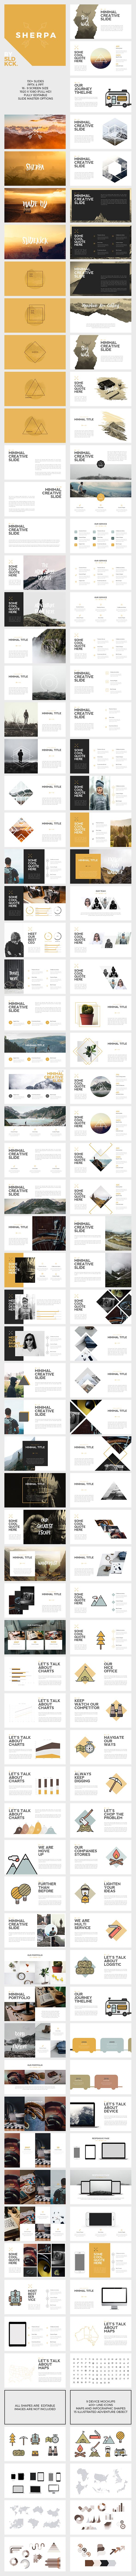 SHERPA - Hipster Powerpoint Presentation Template. Download here: http://graphicriver.net/item/sherpa-hipster-powerpoint-presentation/15721262?ref=ksioks